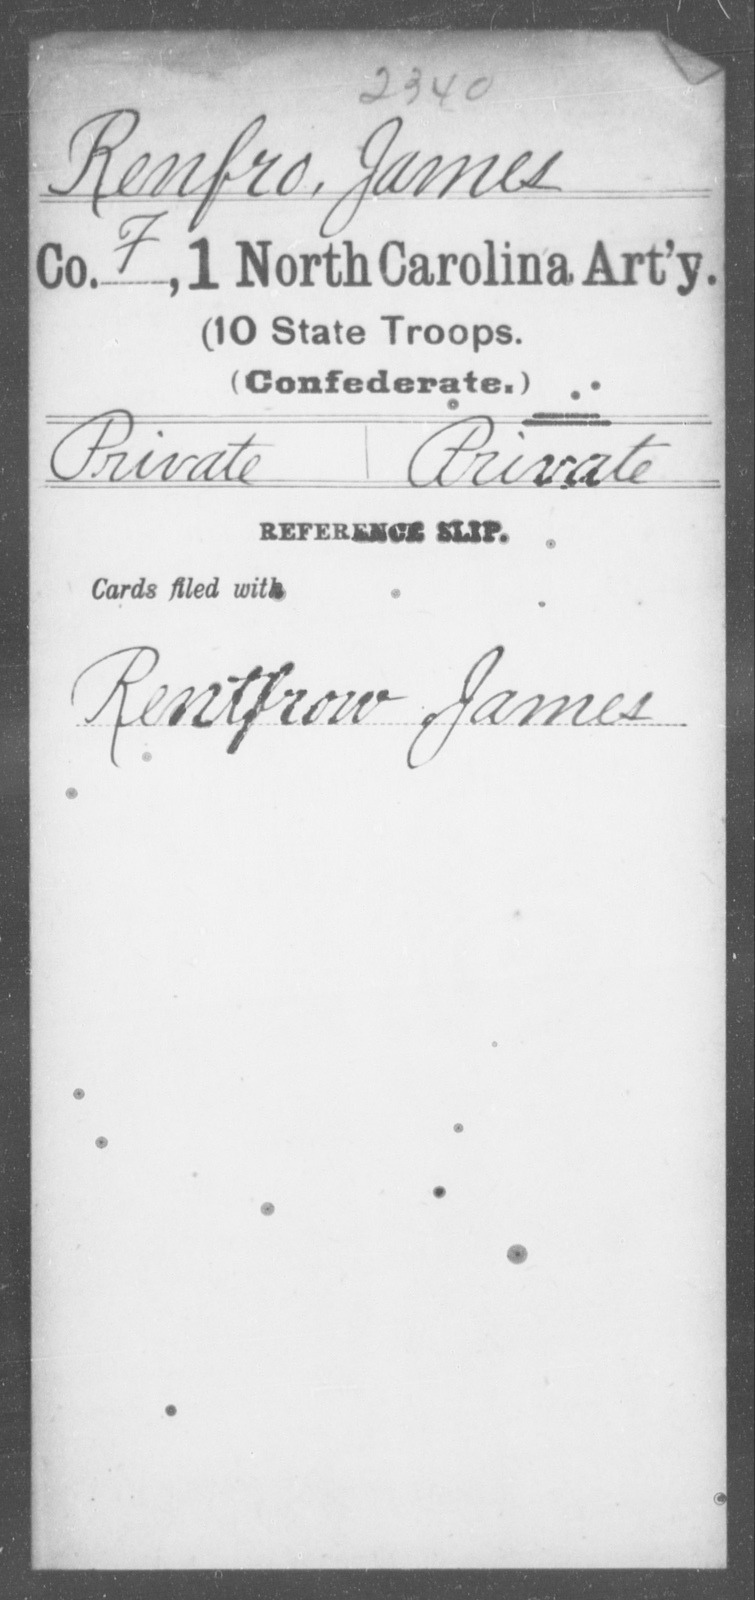 Renfro, James - First Artillery (10th State Troops)